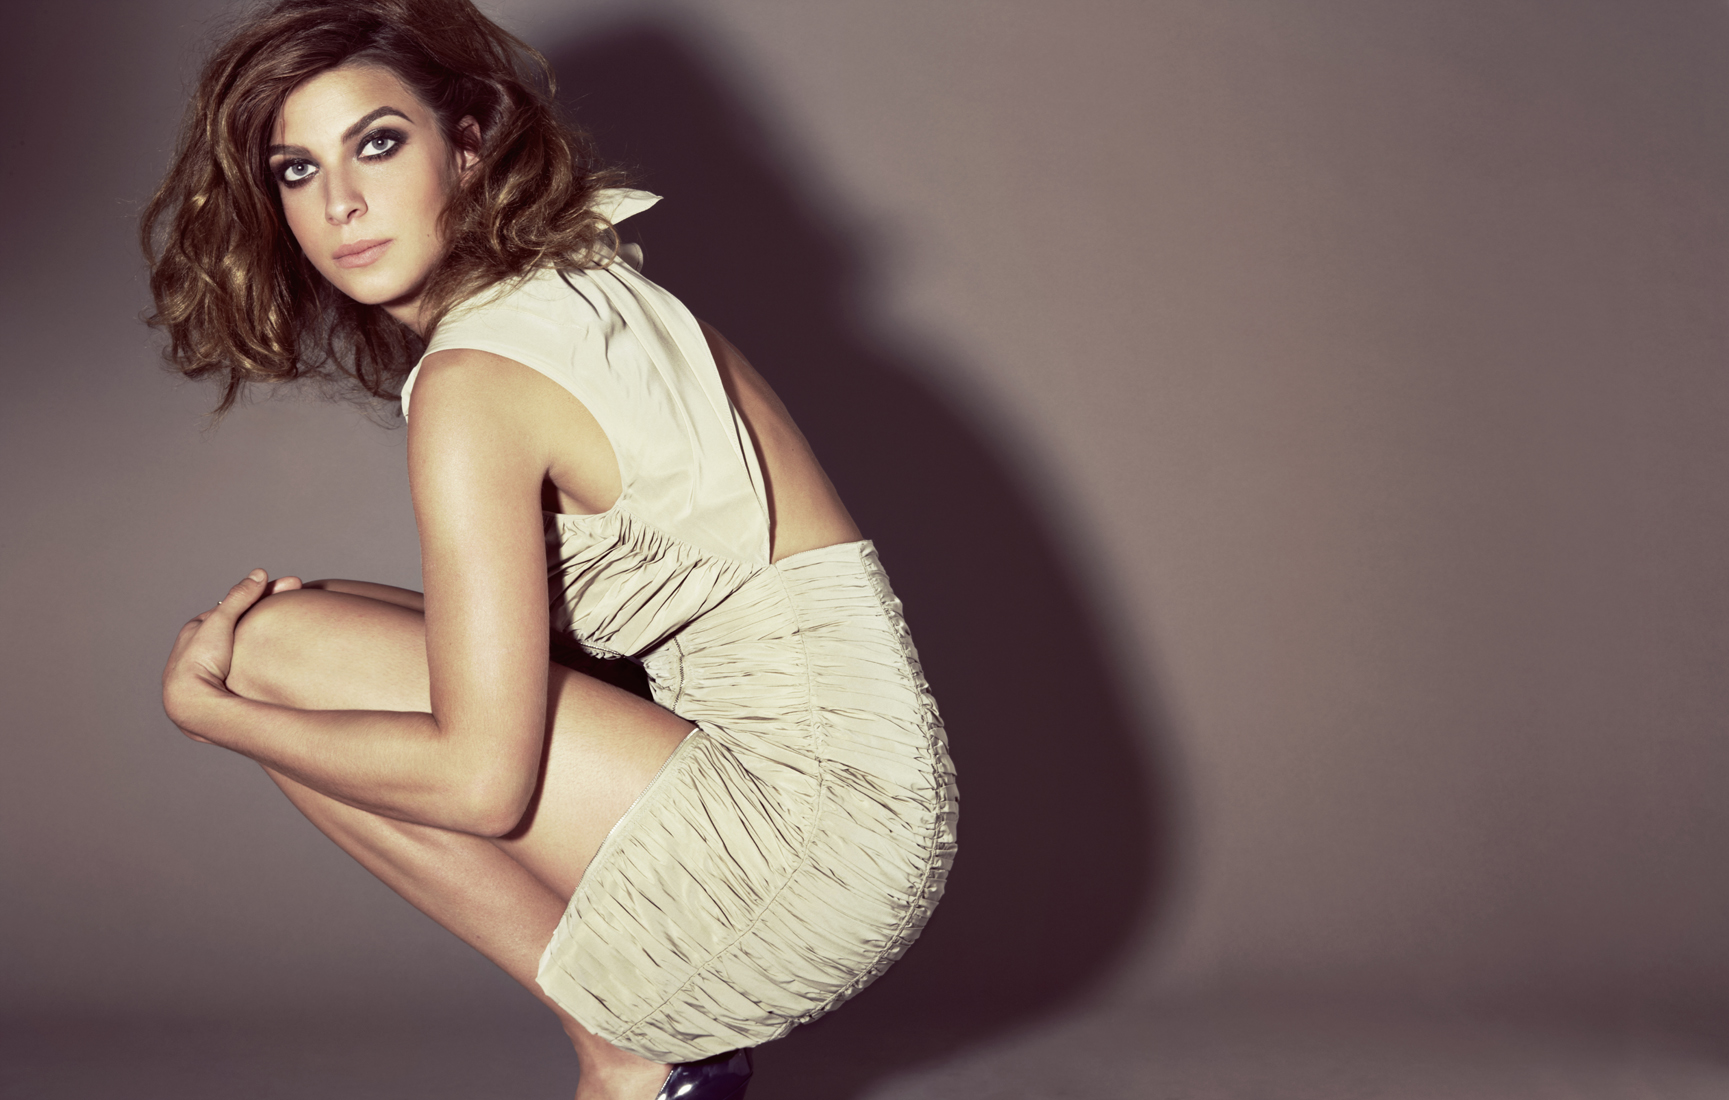 Julia Roberts Hd Wallpapers Natalia Tena Wallpapers High Resolution And Quality Download